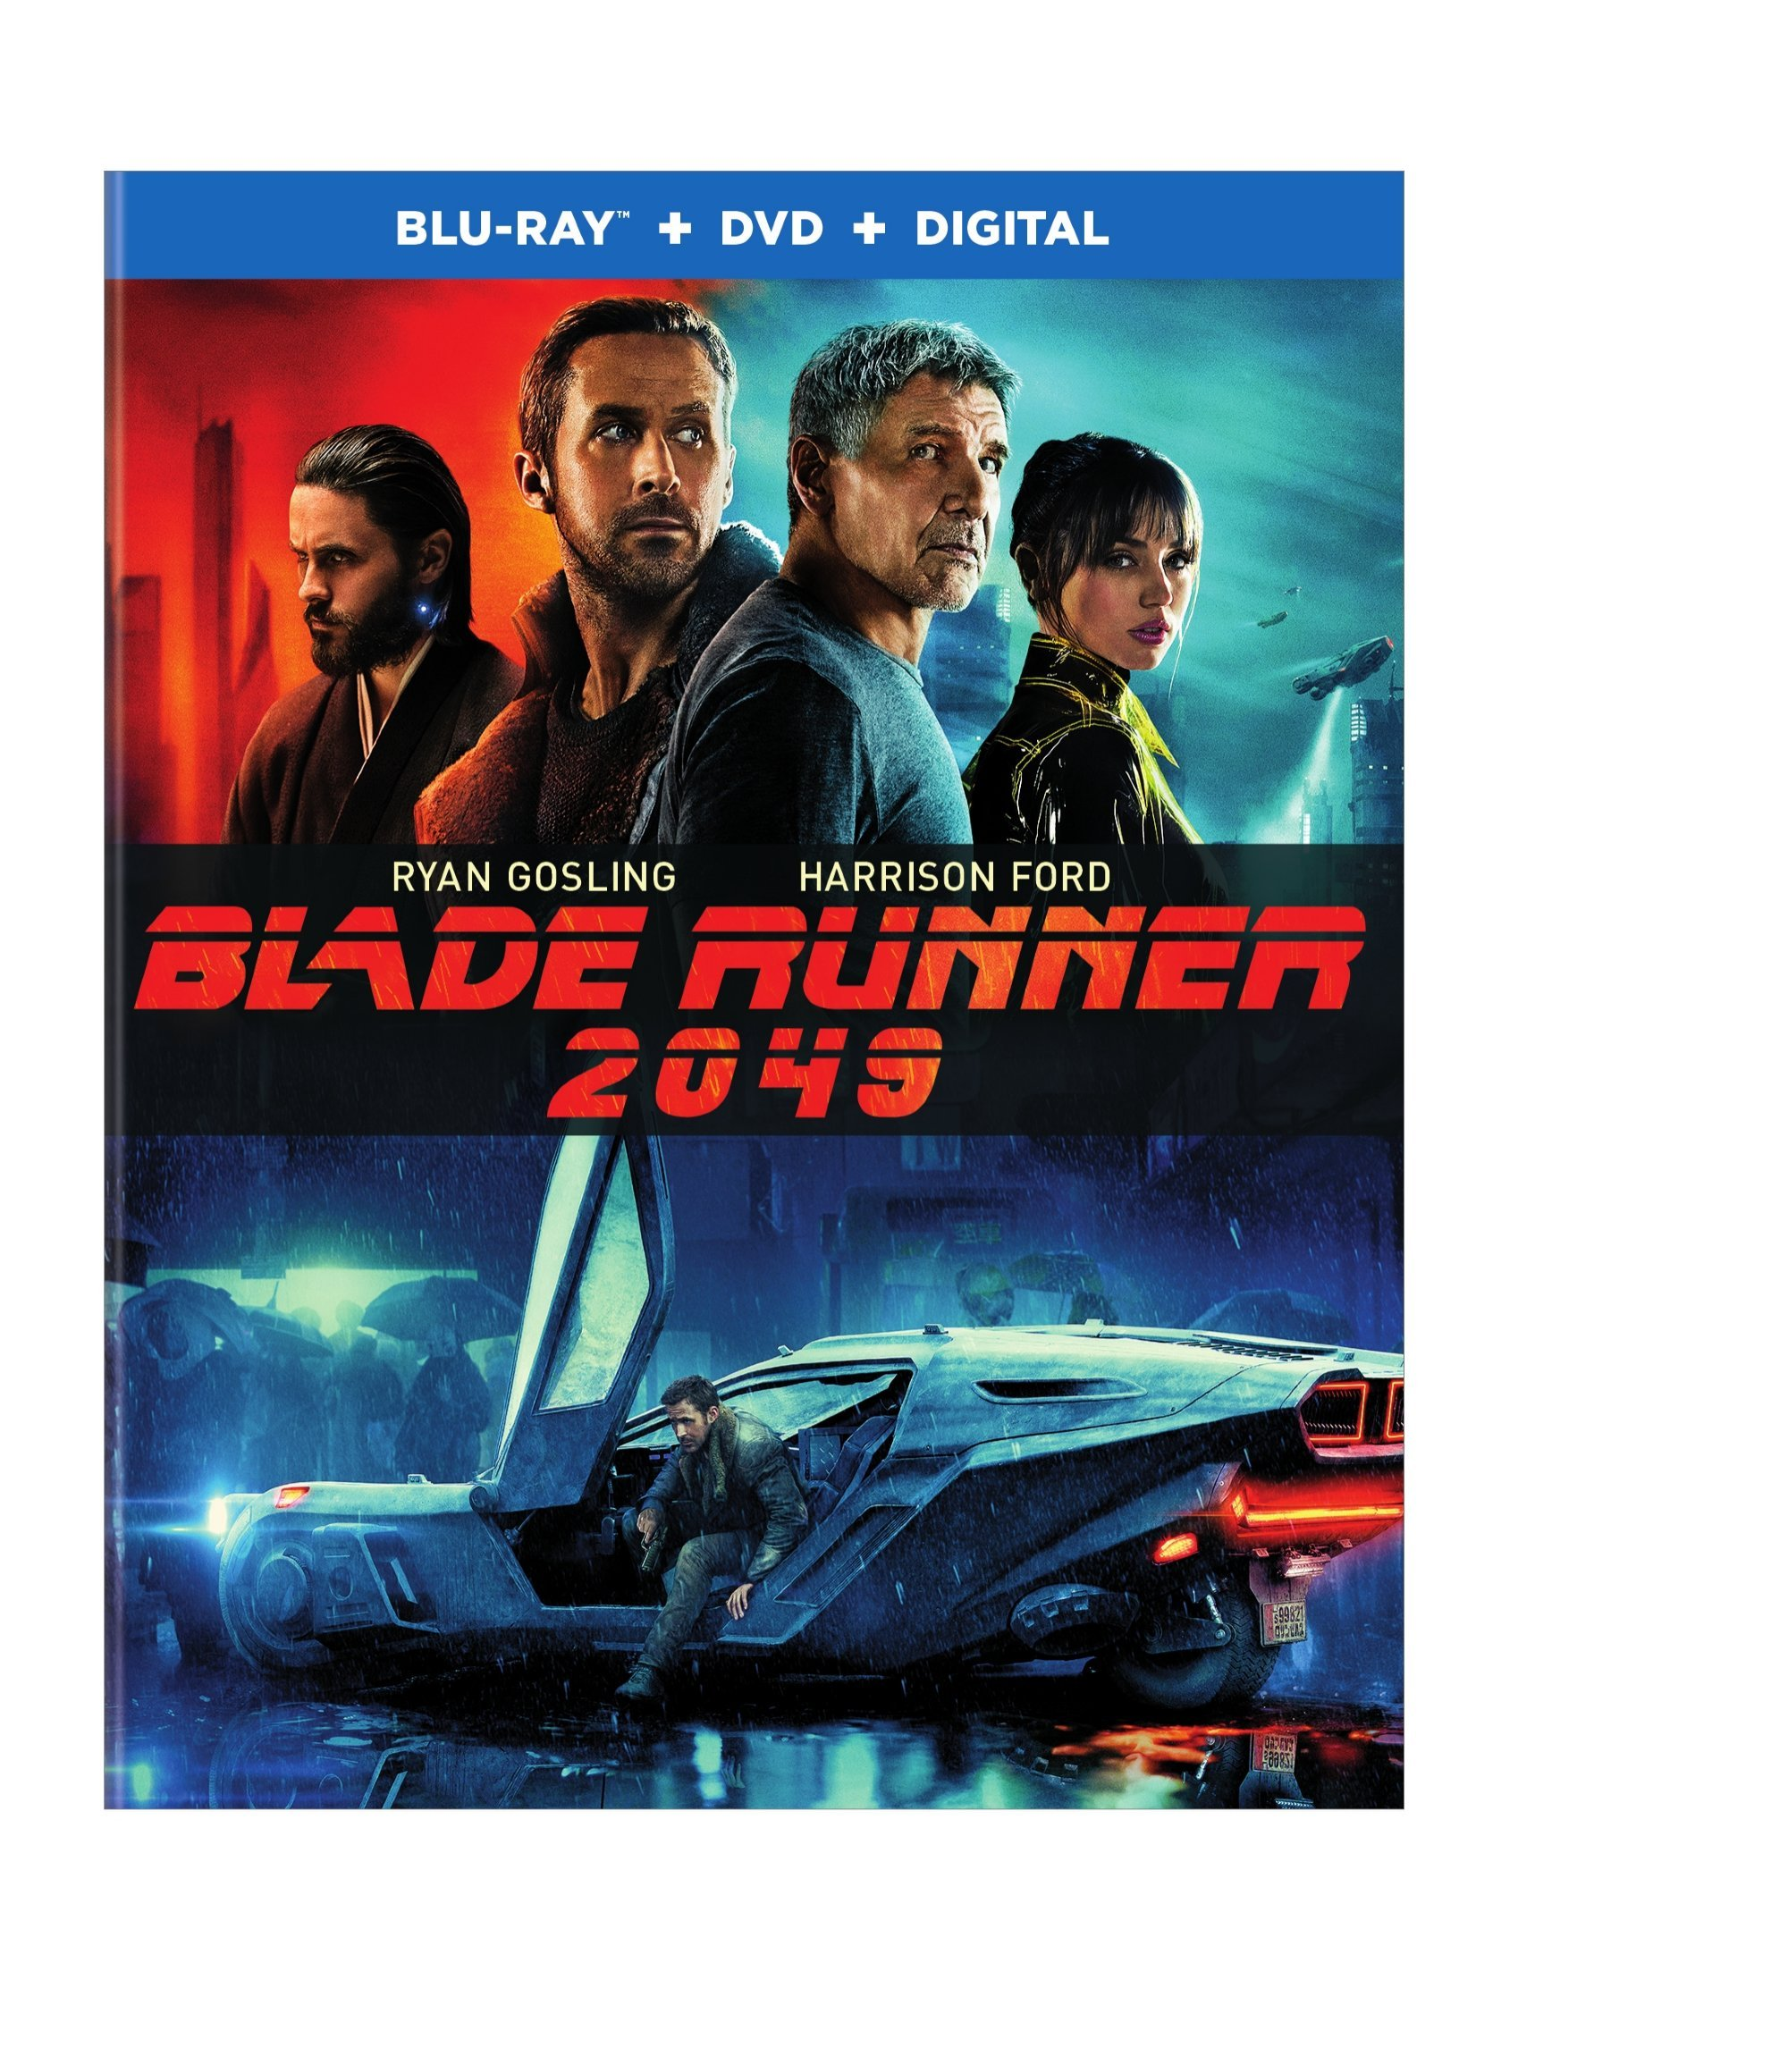 Buy Blade Runner 2049 Now!